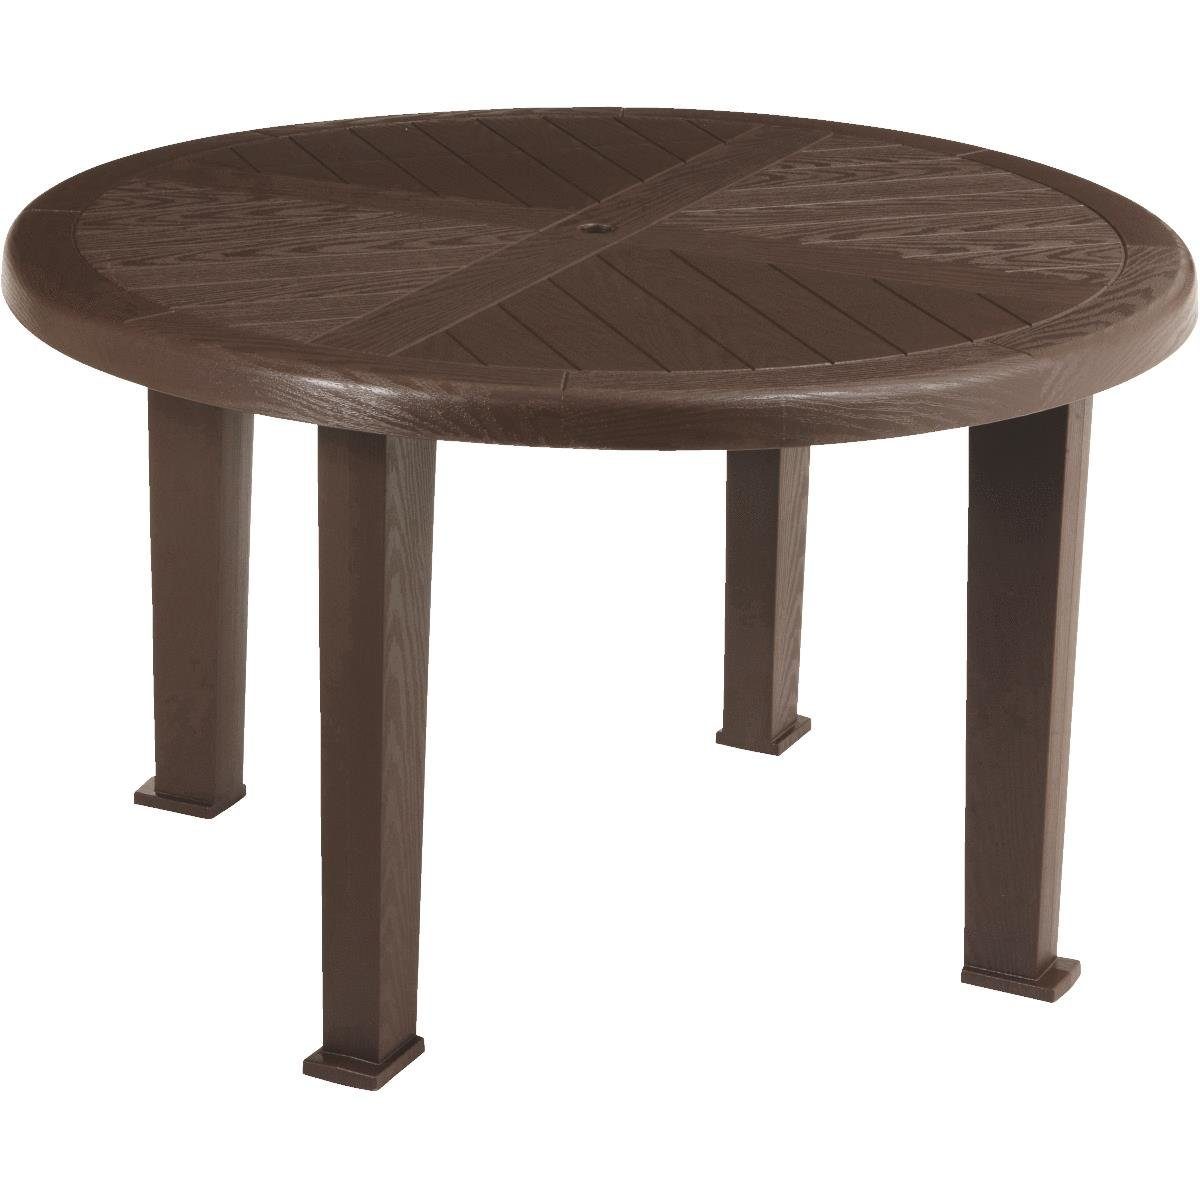 adams brentwood round table denny lumber super zoom middletown accent patio gray metal coffee ashley furniture white dresser fancy tablecloths side with glass top pub chairs small